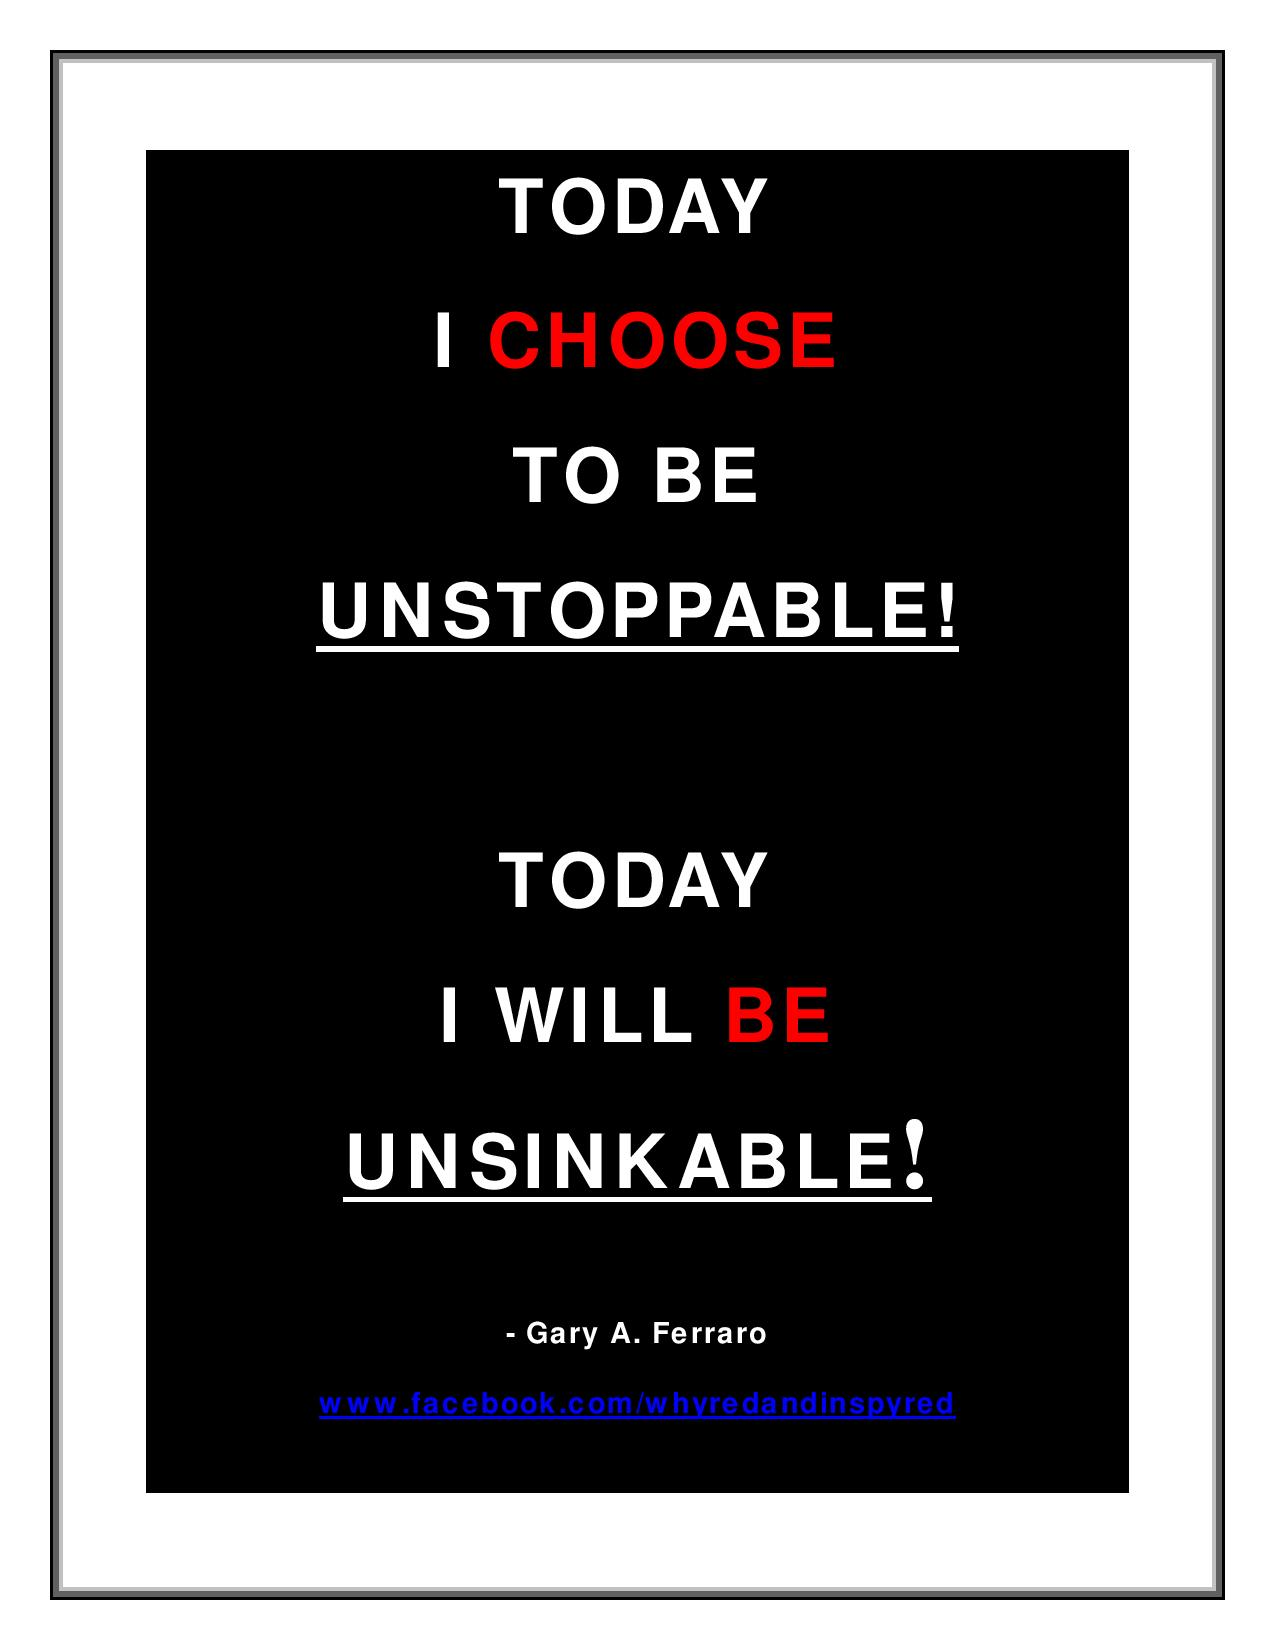 TODAY I CHOOSE TO BE UNSTOPPABLE AND UNSINKABLE-BL-page-001